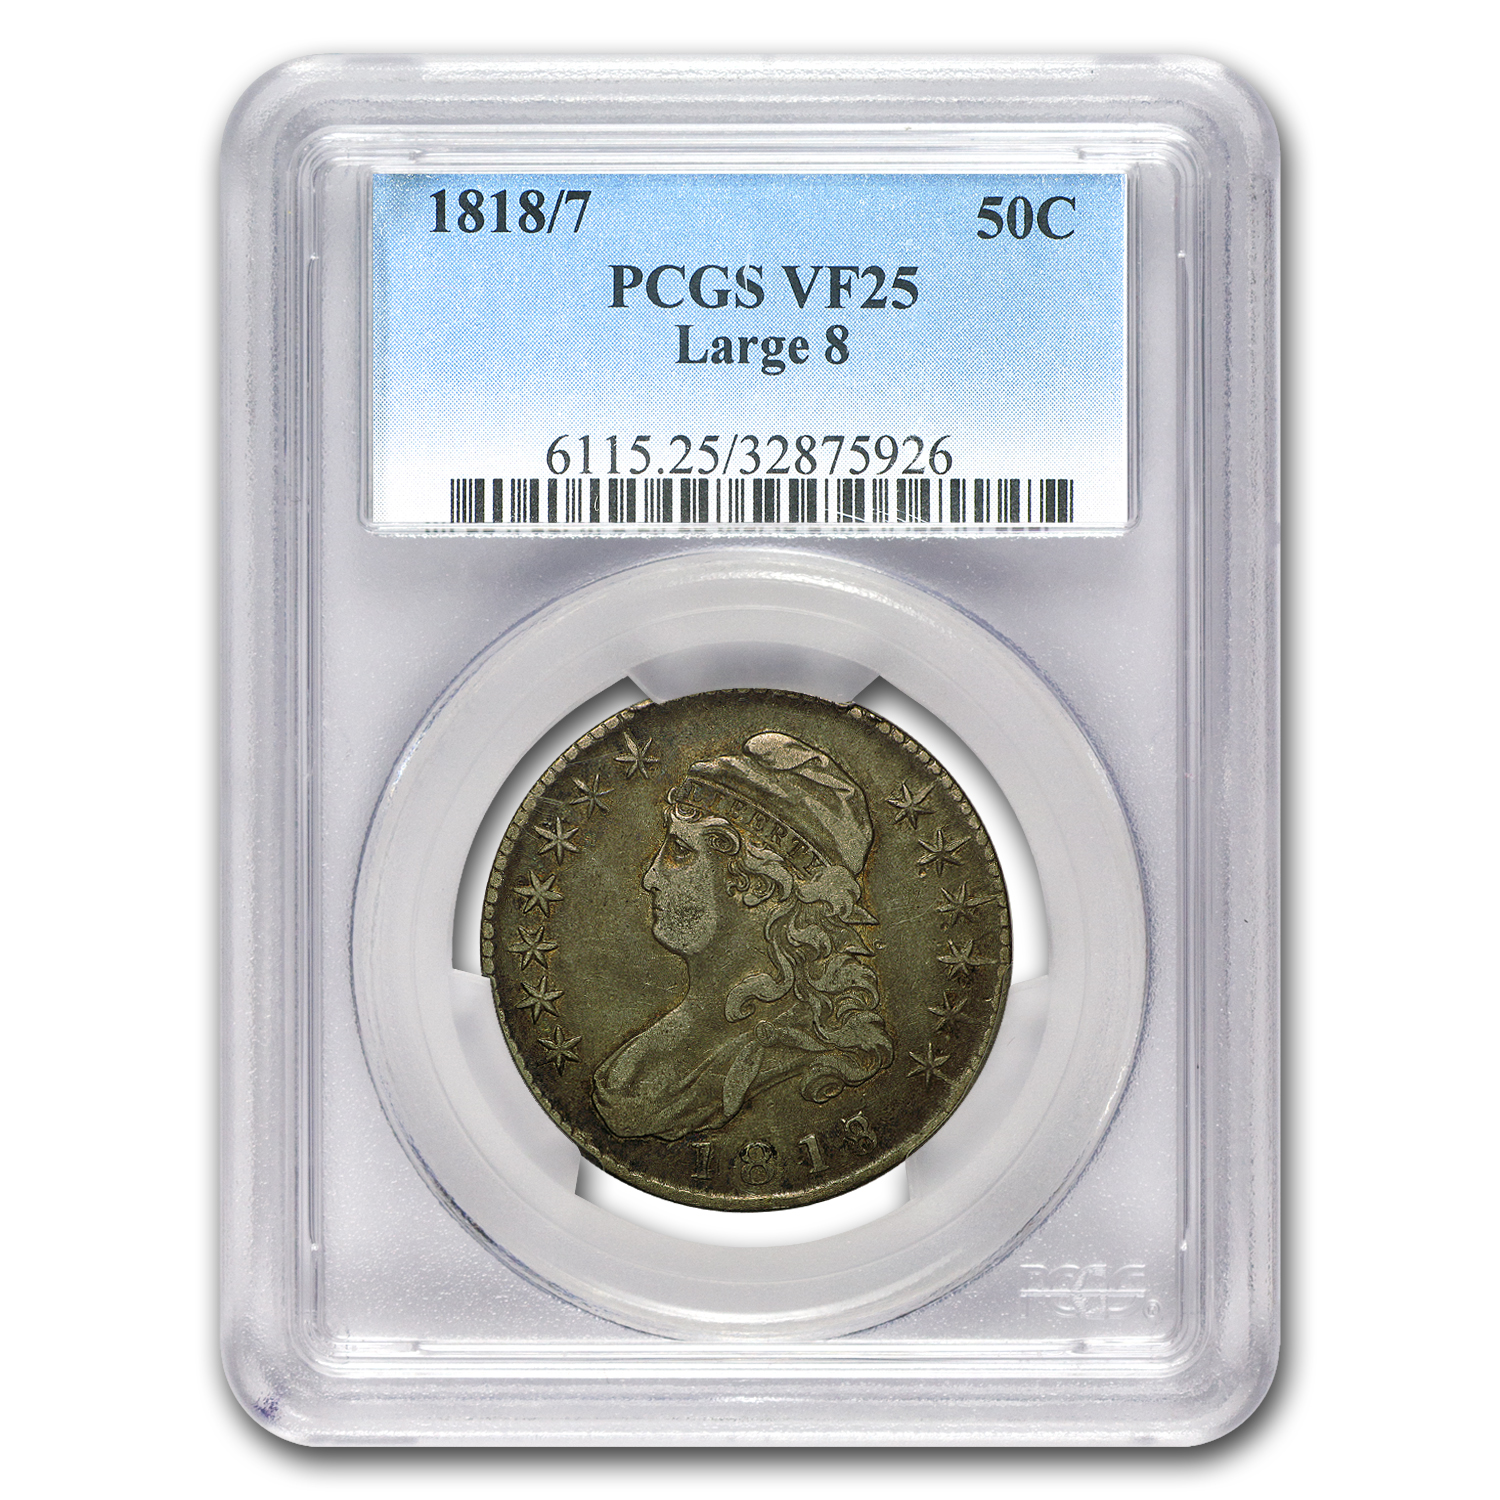 1818/7 Capped Bust Half Dollar VF-25 PCGS (Large 8)